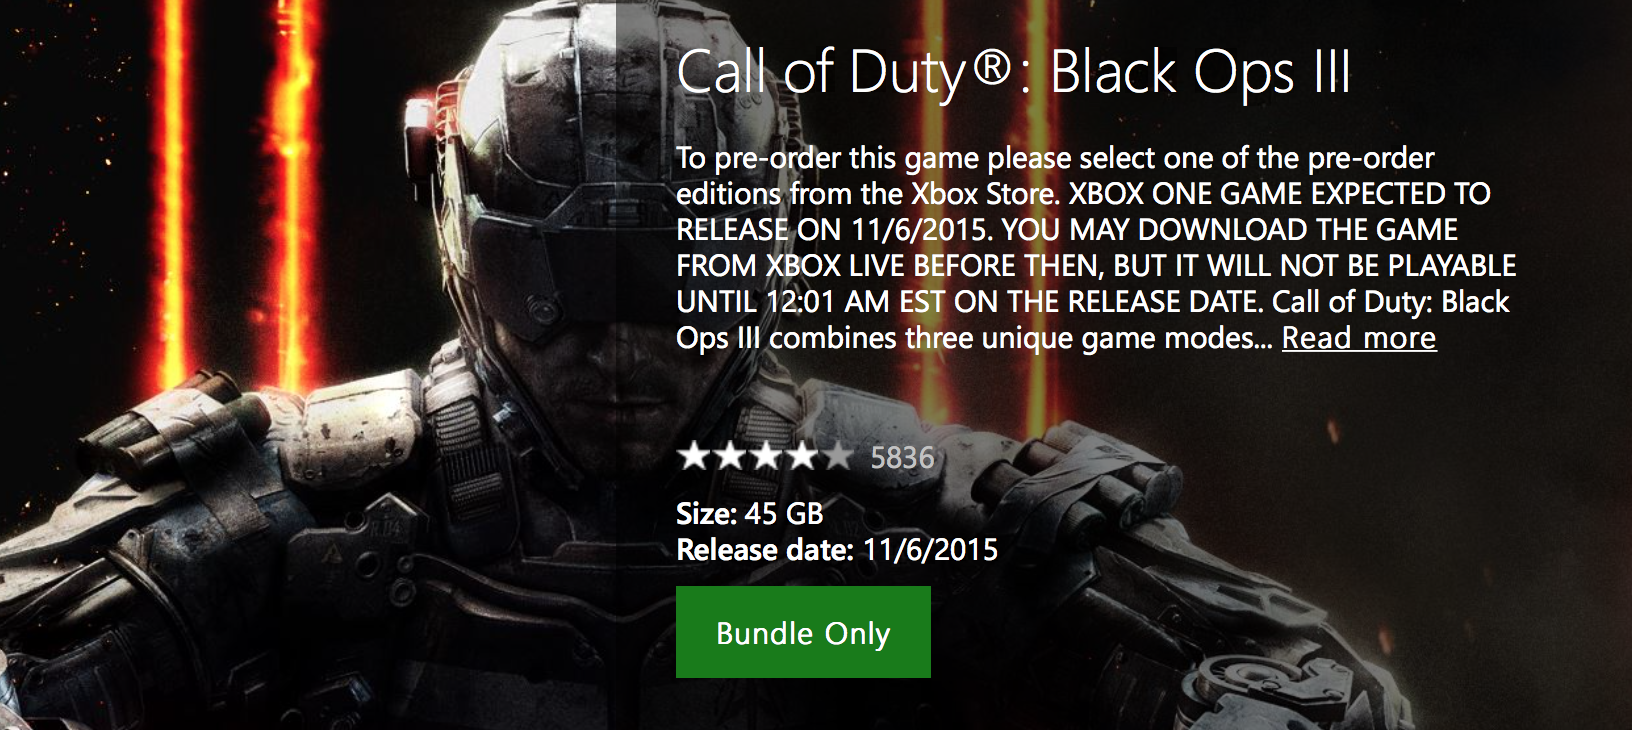 xbox one call of duty black ops 3 file size